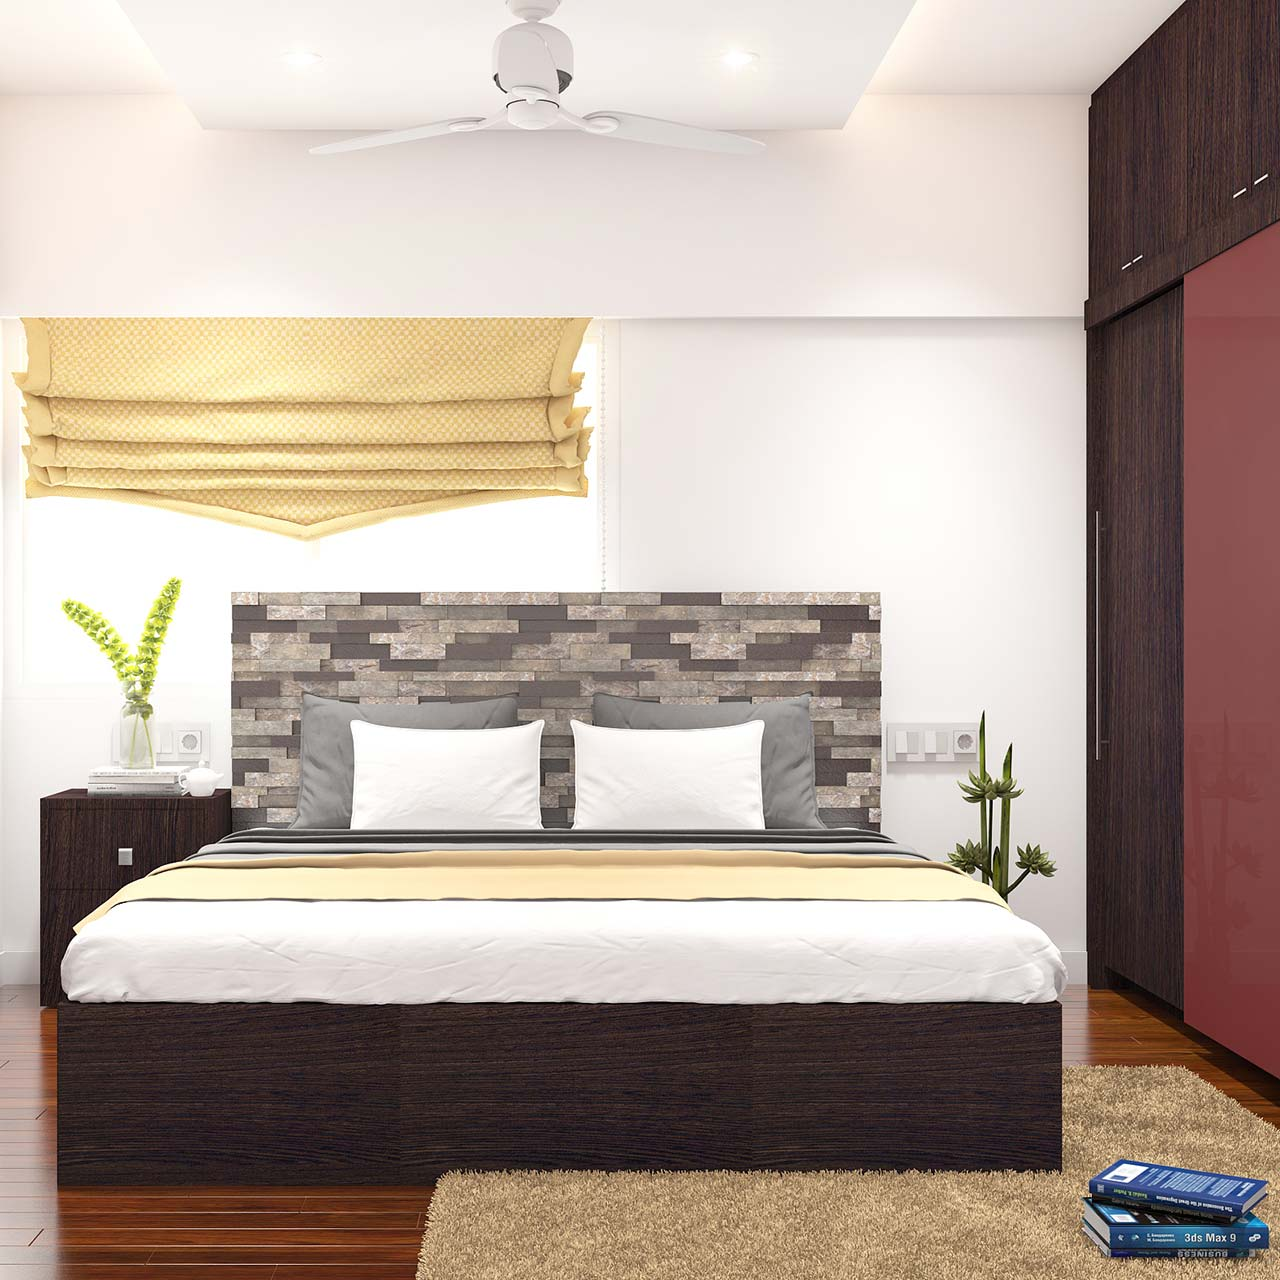 Bedroom Interior Design Checklist Guides Design Cafe